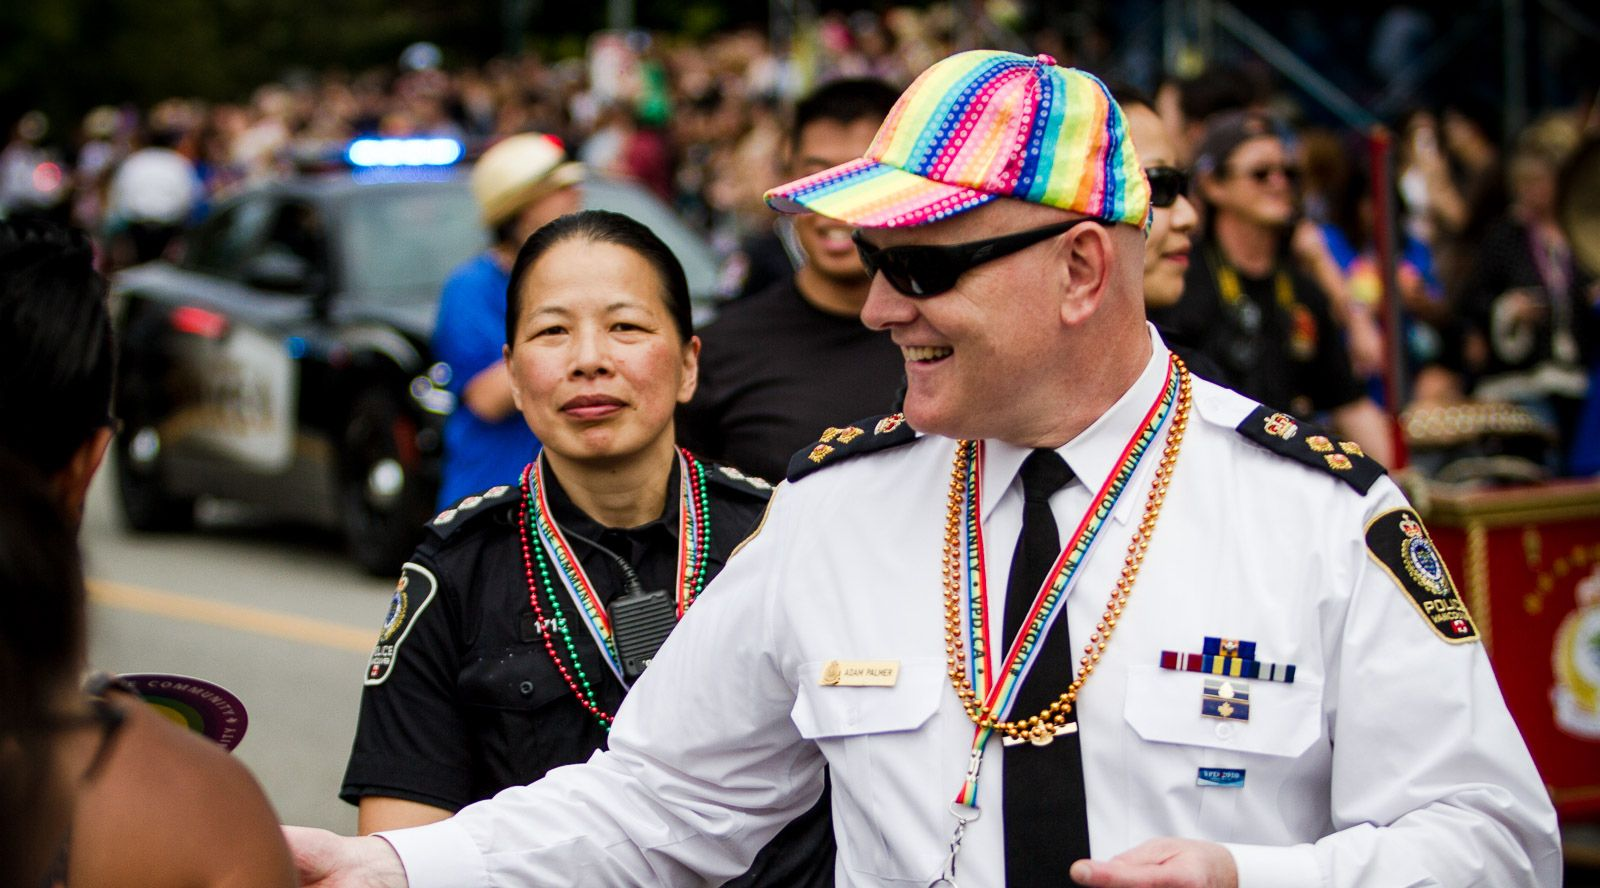 Petition to keep Vancouver Police in Pride Parade quickly gains momentum